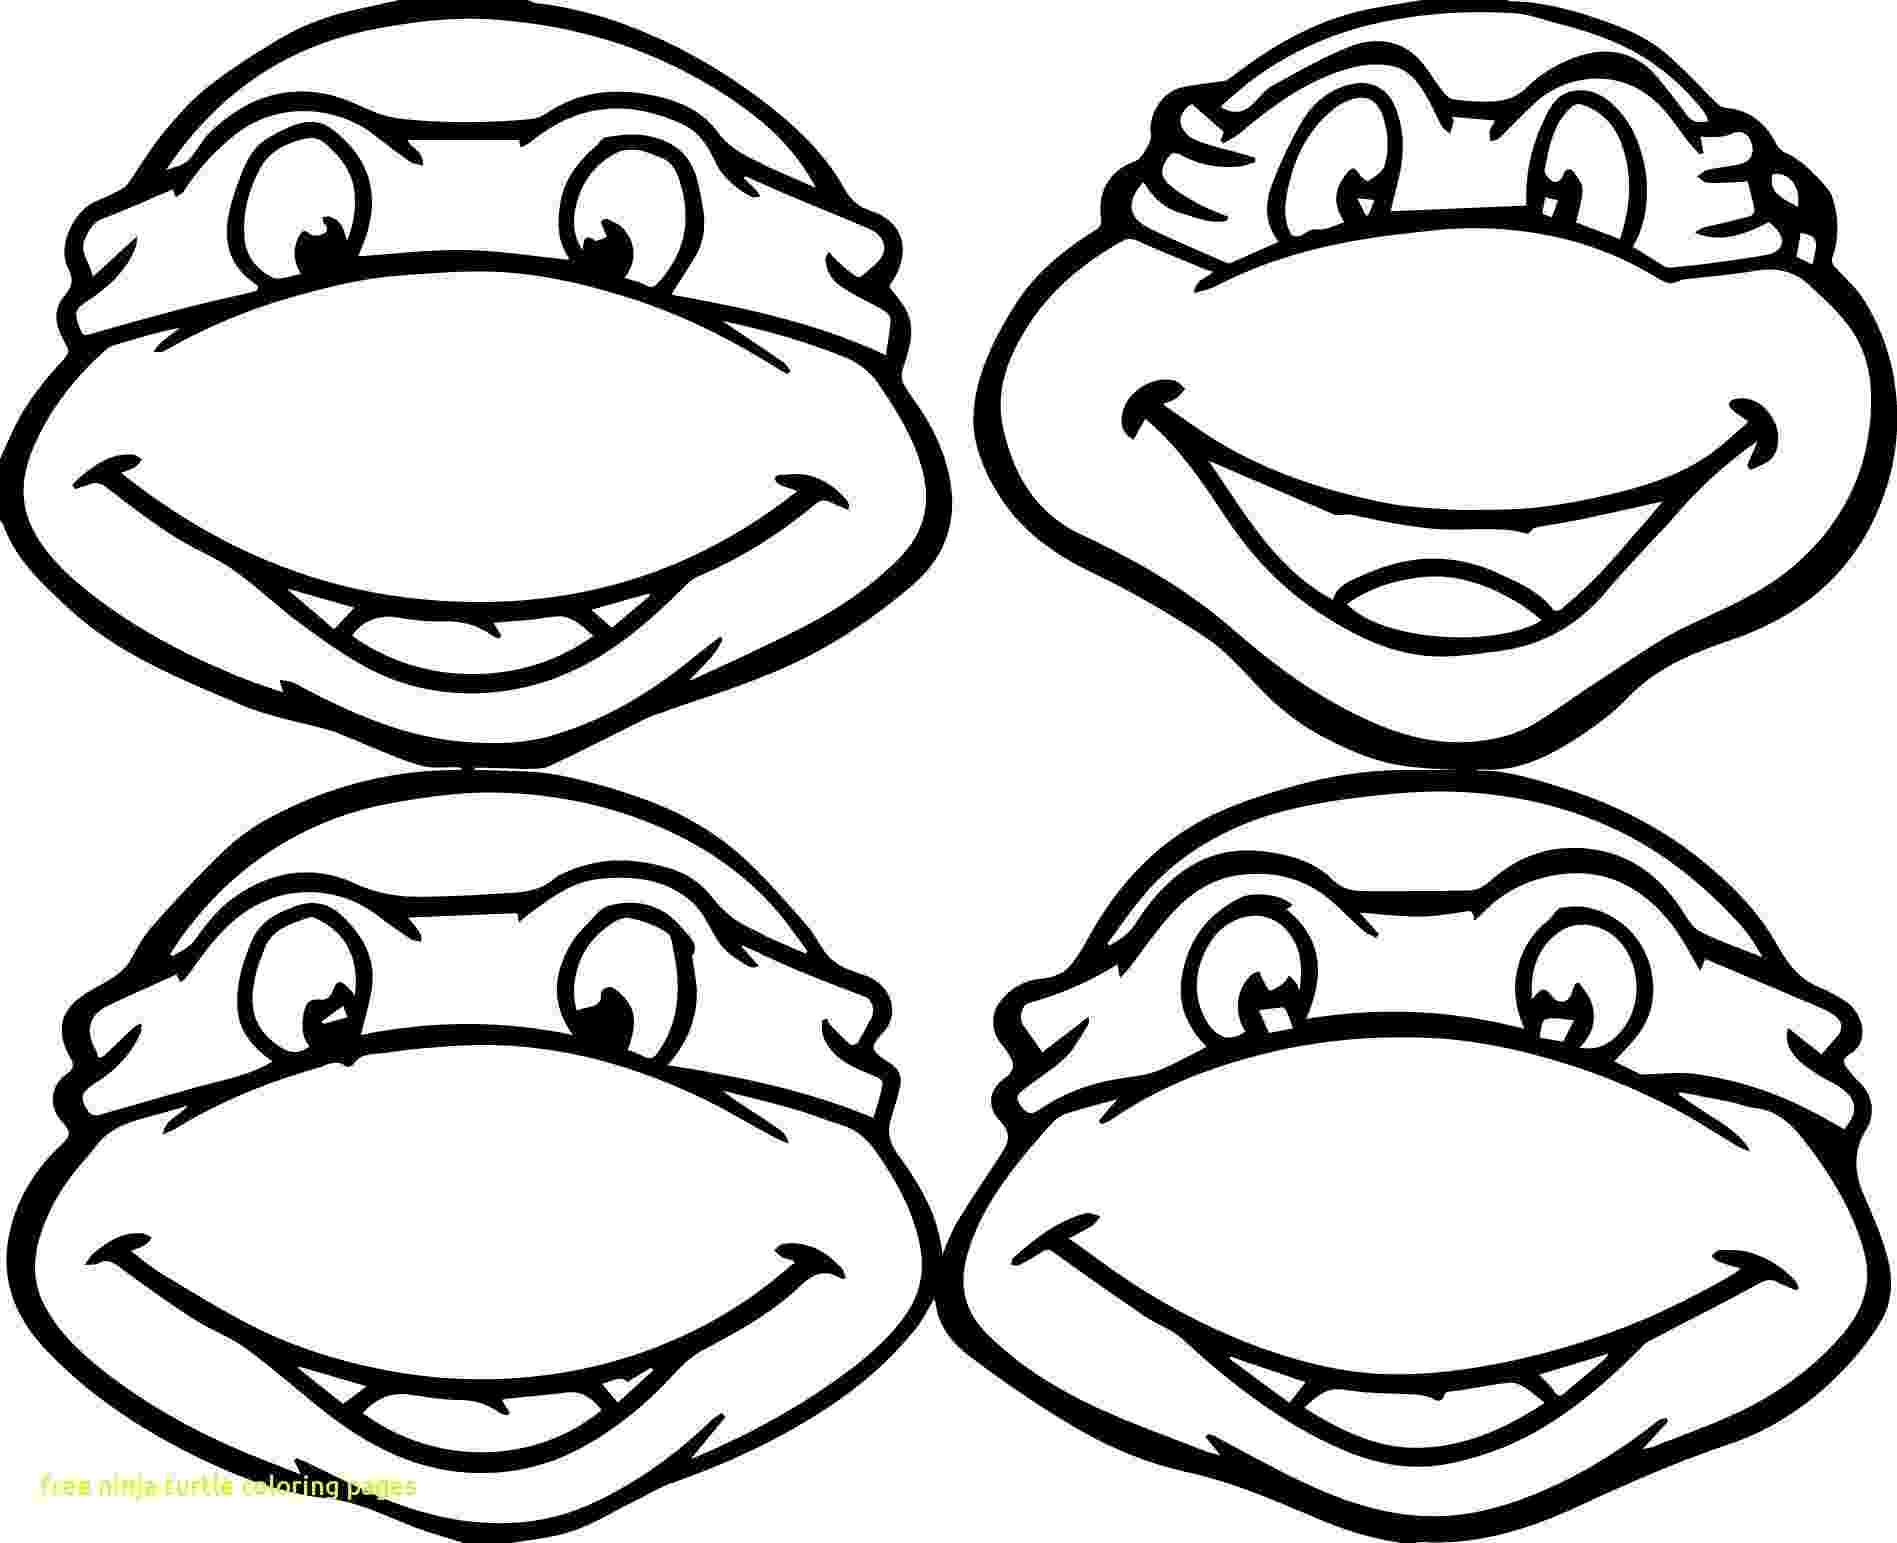 ninja turtles face coloring pages ninja turtle head template invitation templates turtles face coloring pages ninja